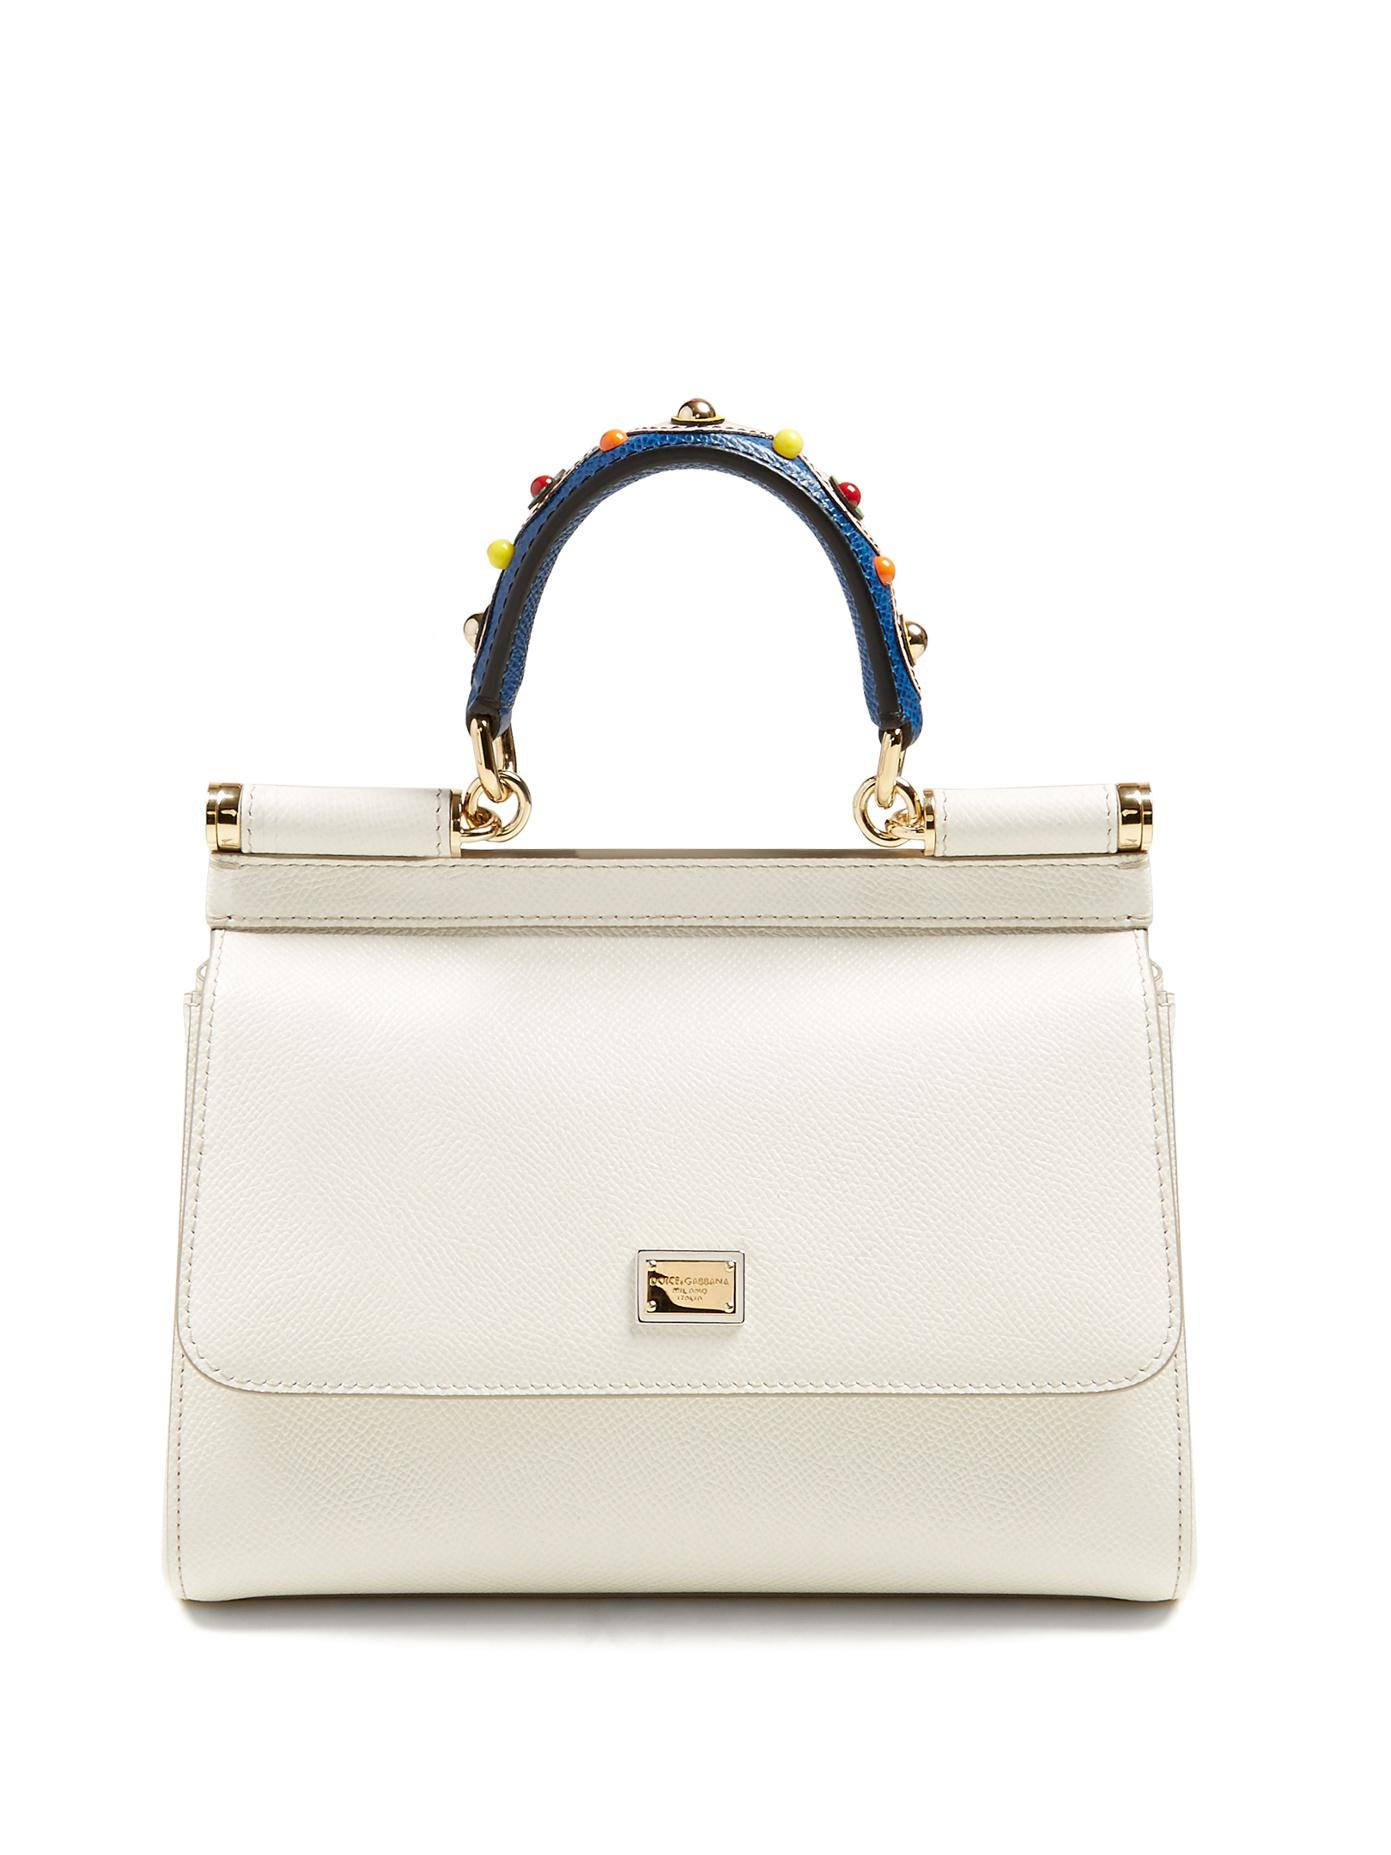 3fc50595fd Lyst - Dolce   Gabbana Sicily Small Pebble-leather Cross-body Bag in ...